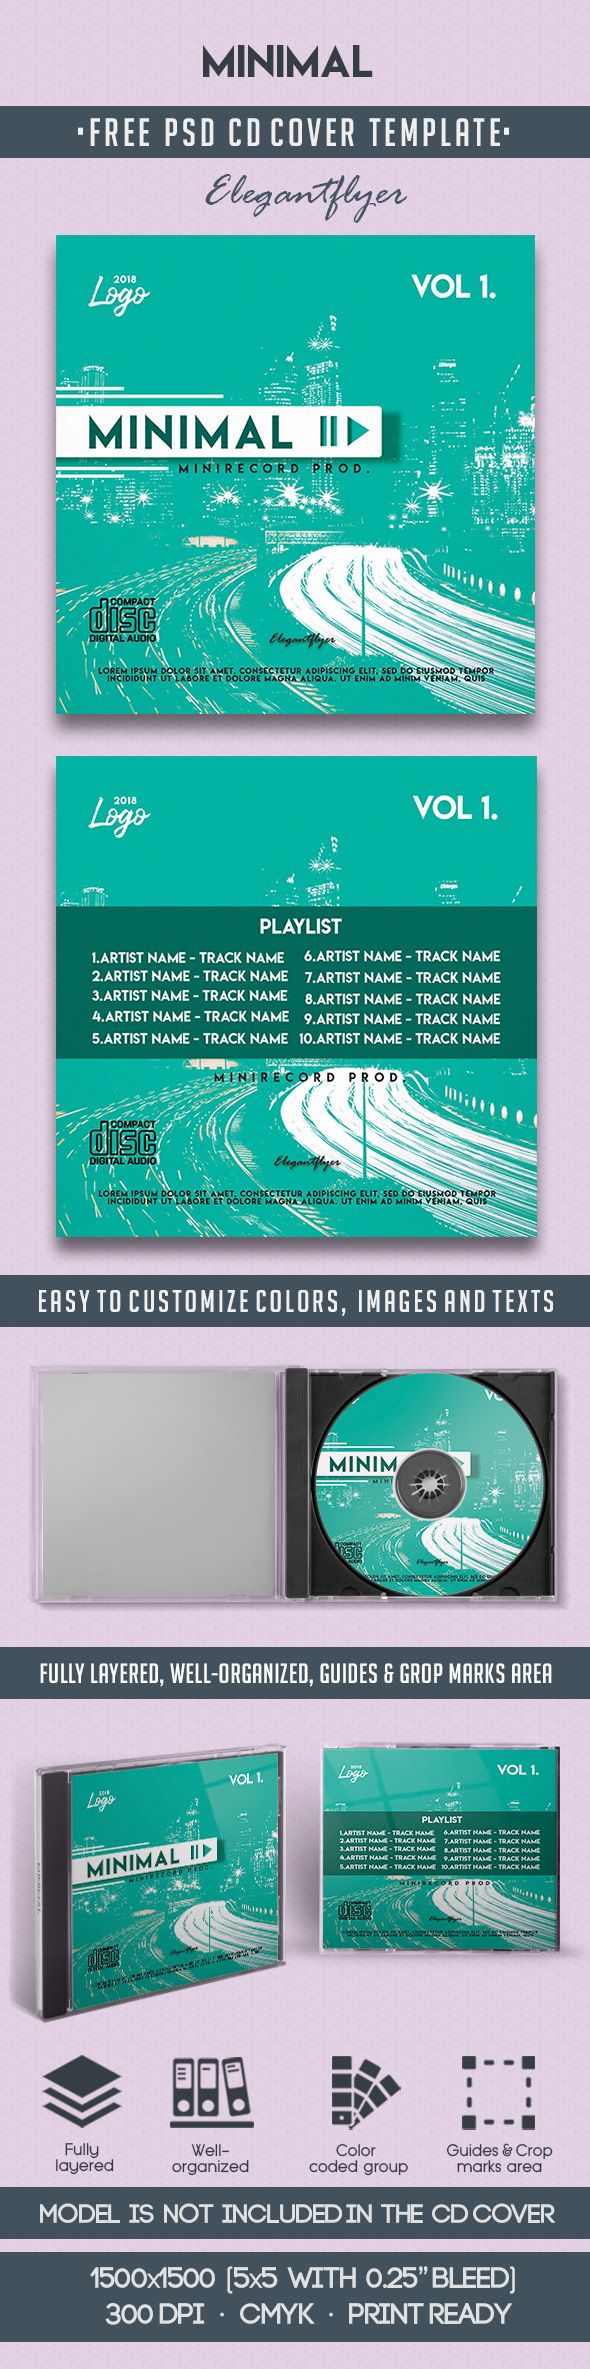 Minimal – Free CD Cover PSD Template